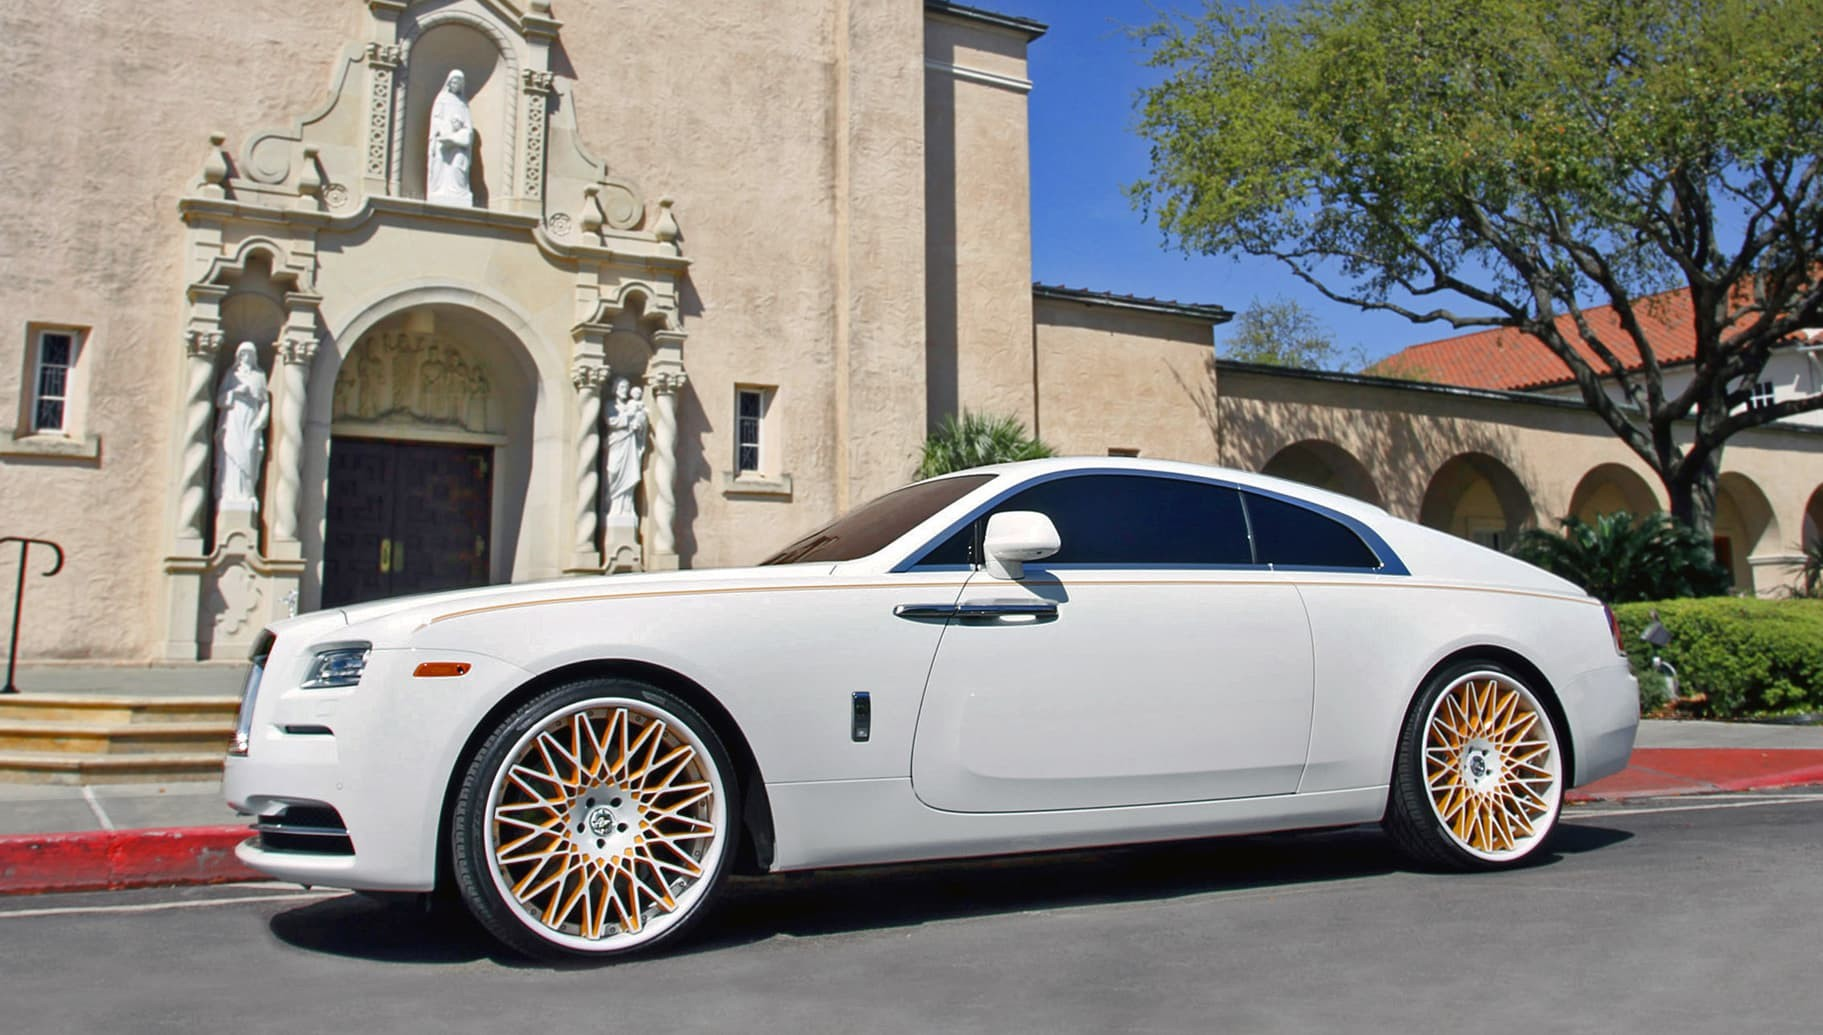 2014 Rolls Royce with custom LC-Monza.